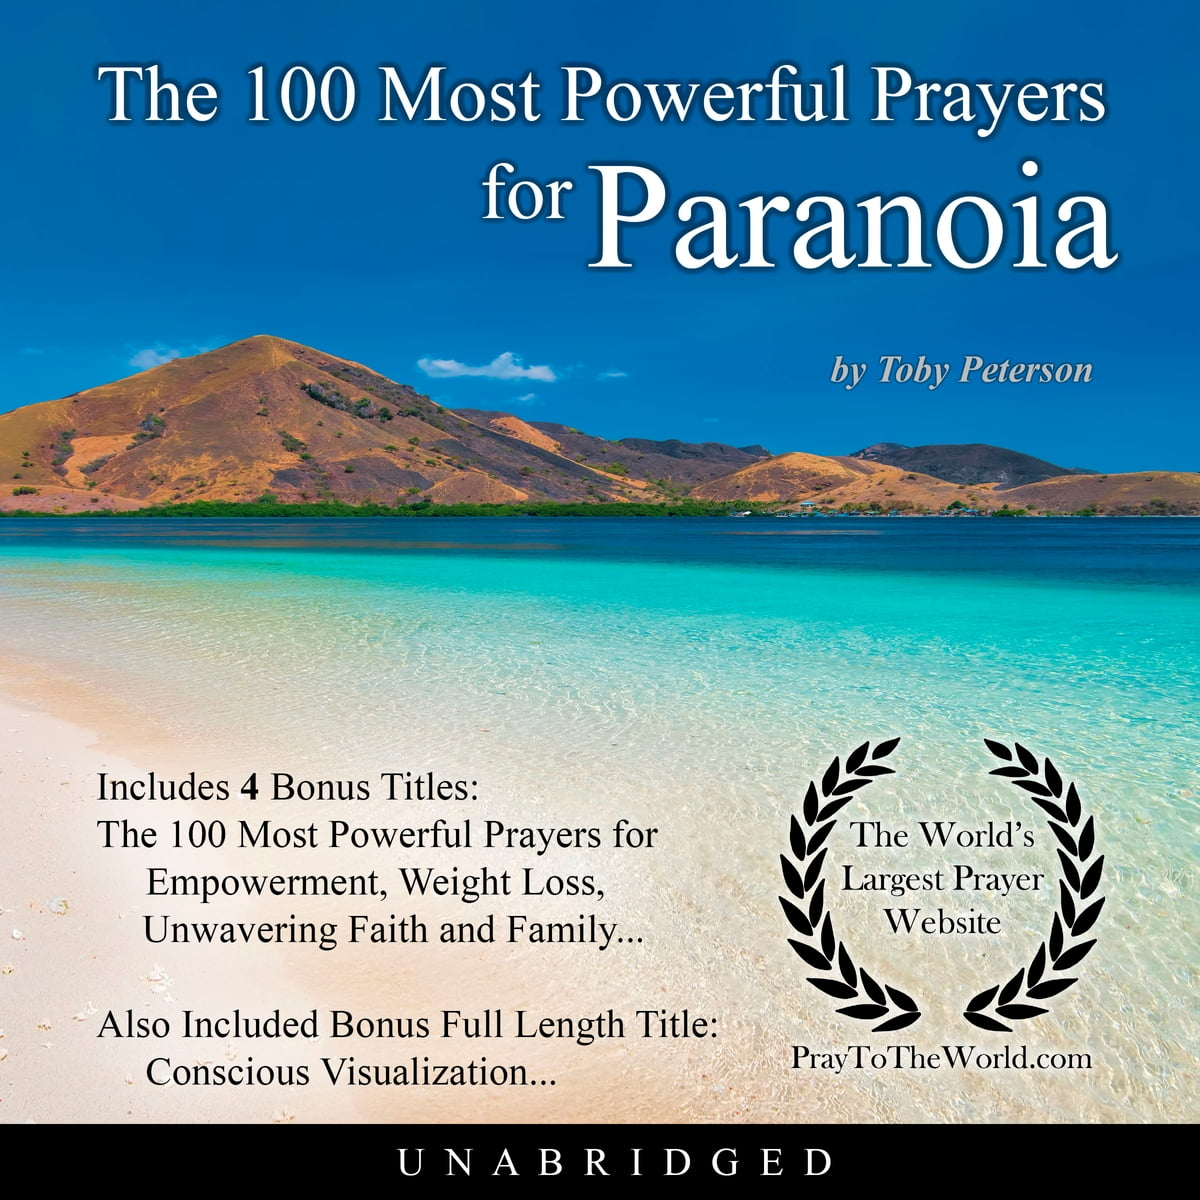 Paranoia, Power and Prayer